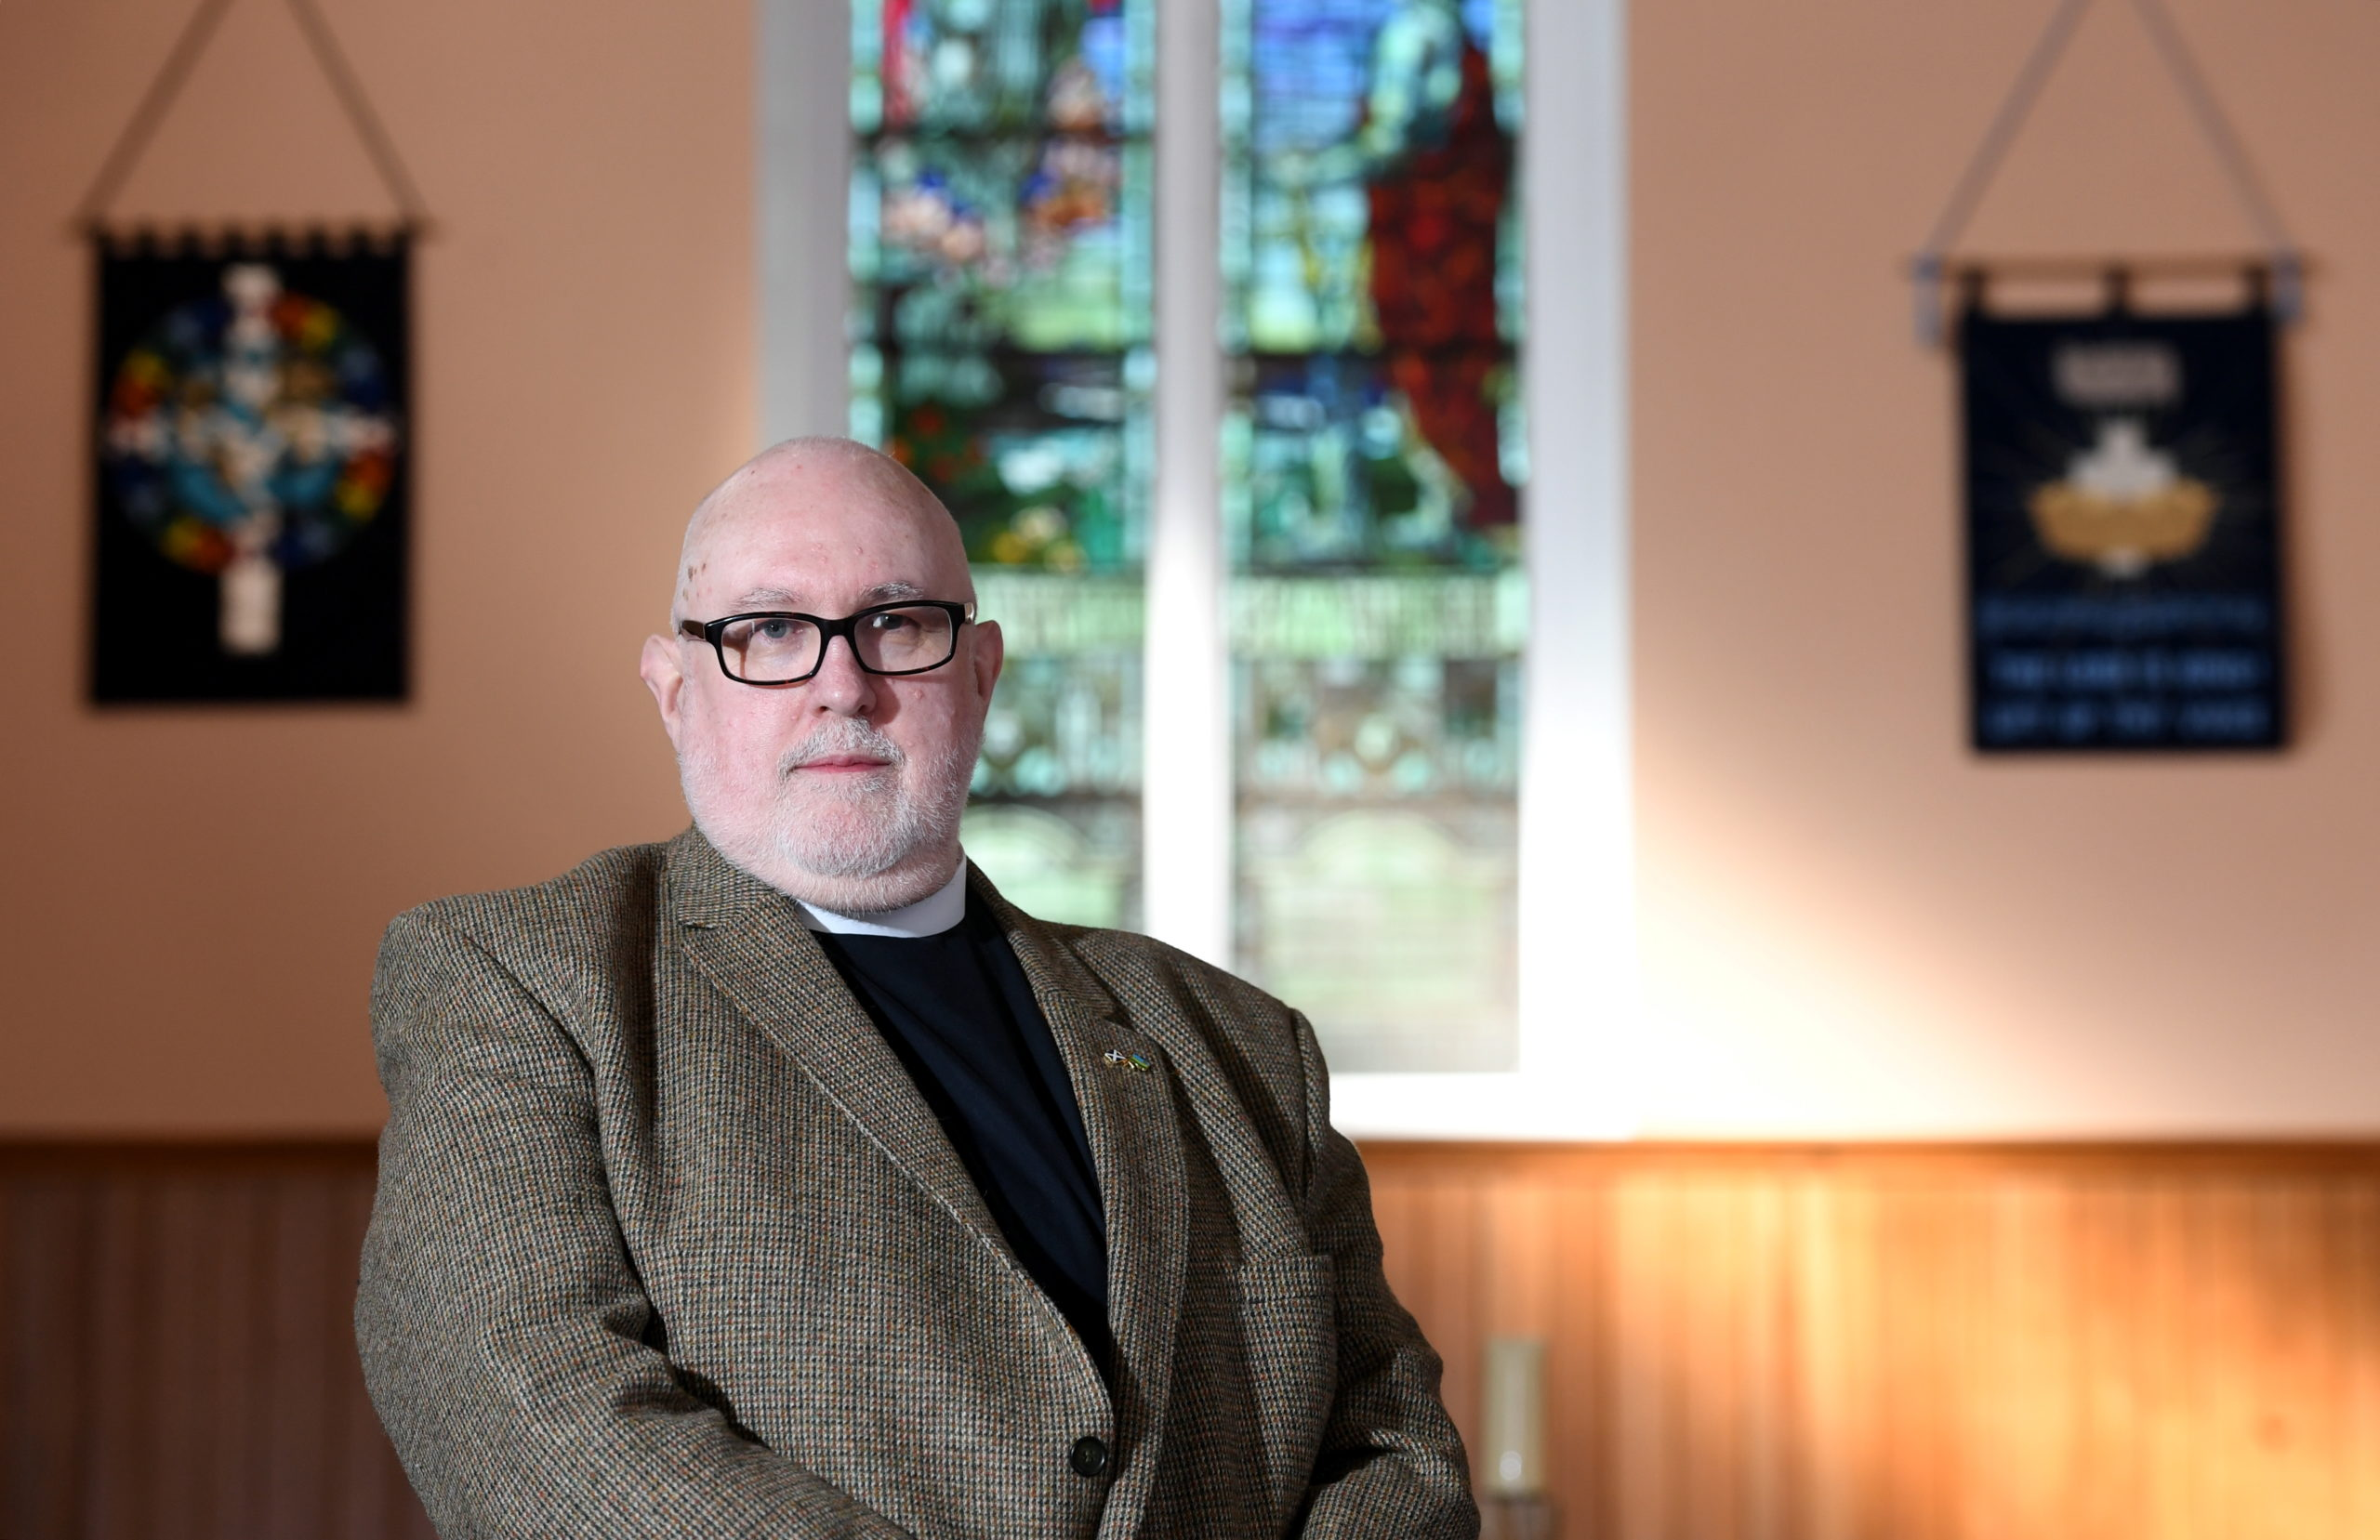 Rev Hutton Steel, the new moderator of the presbytery of Aberdeen and Shetland